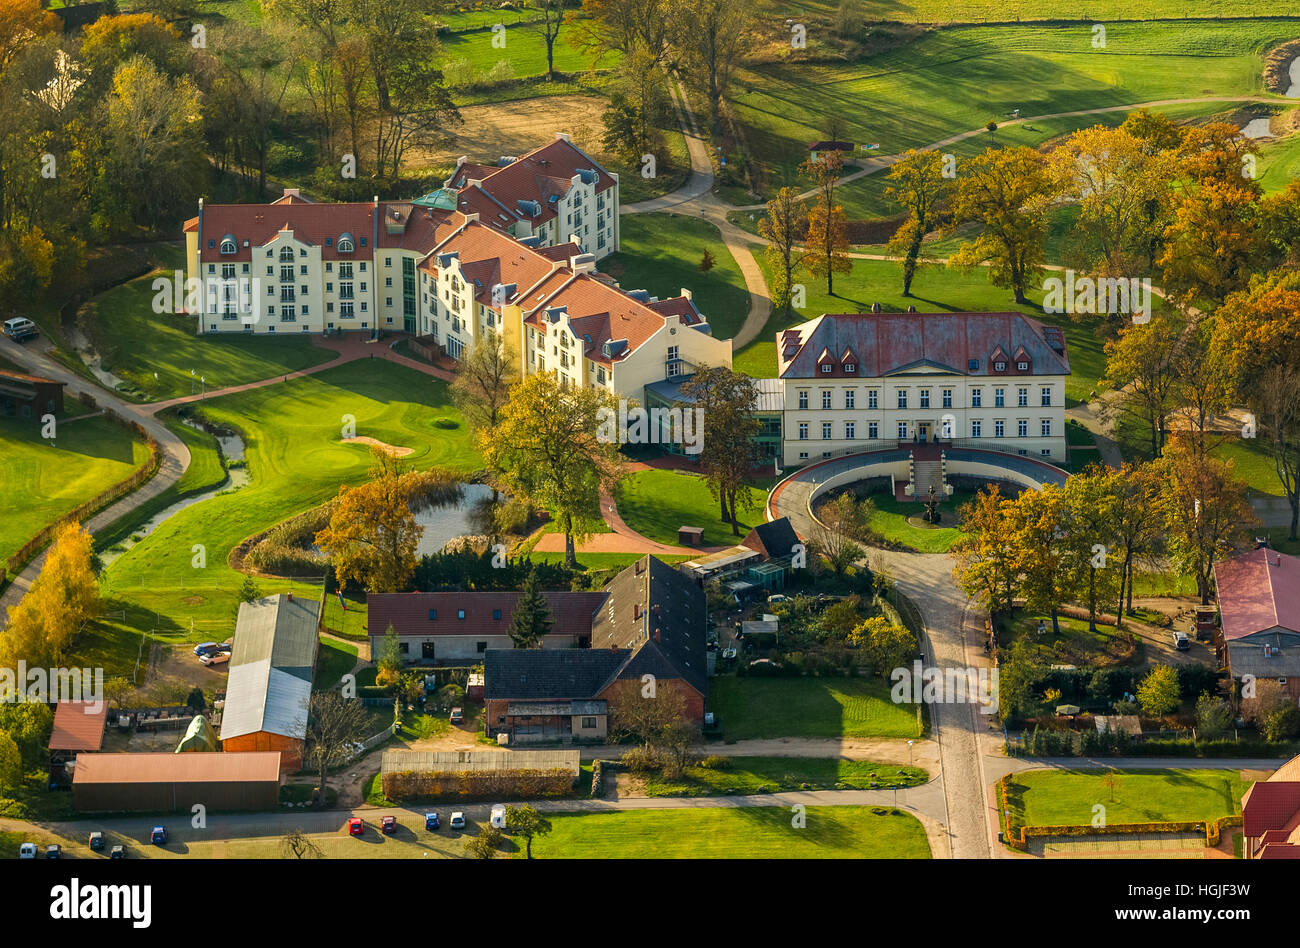 Aerial view, Country hotel castle,Schloss Teschow, Teterow, Mecklenburg Lake District, Mecklenburg-Western Pomerania, - Stock Image